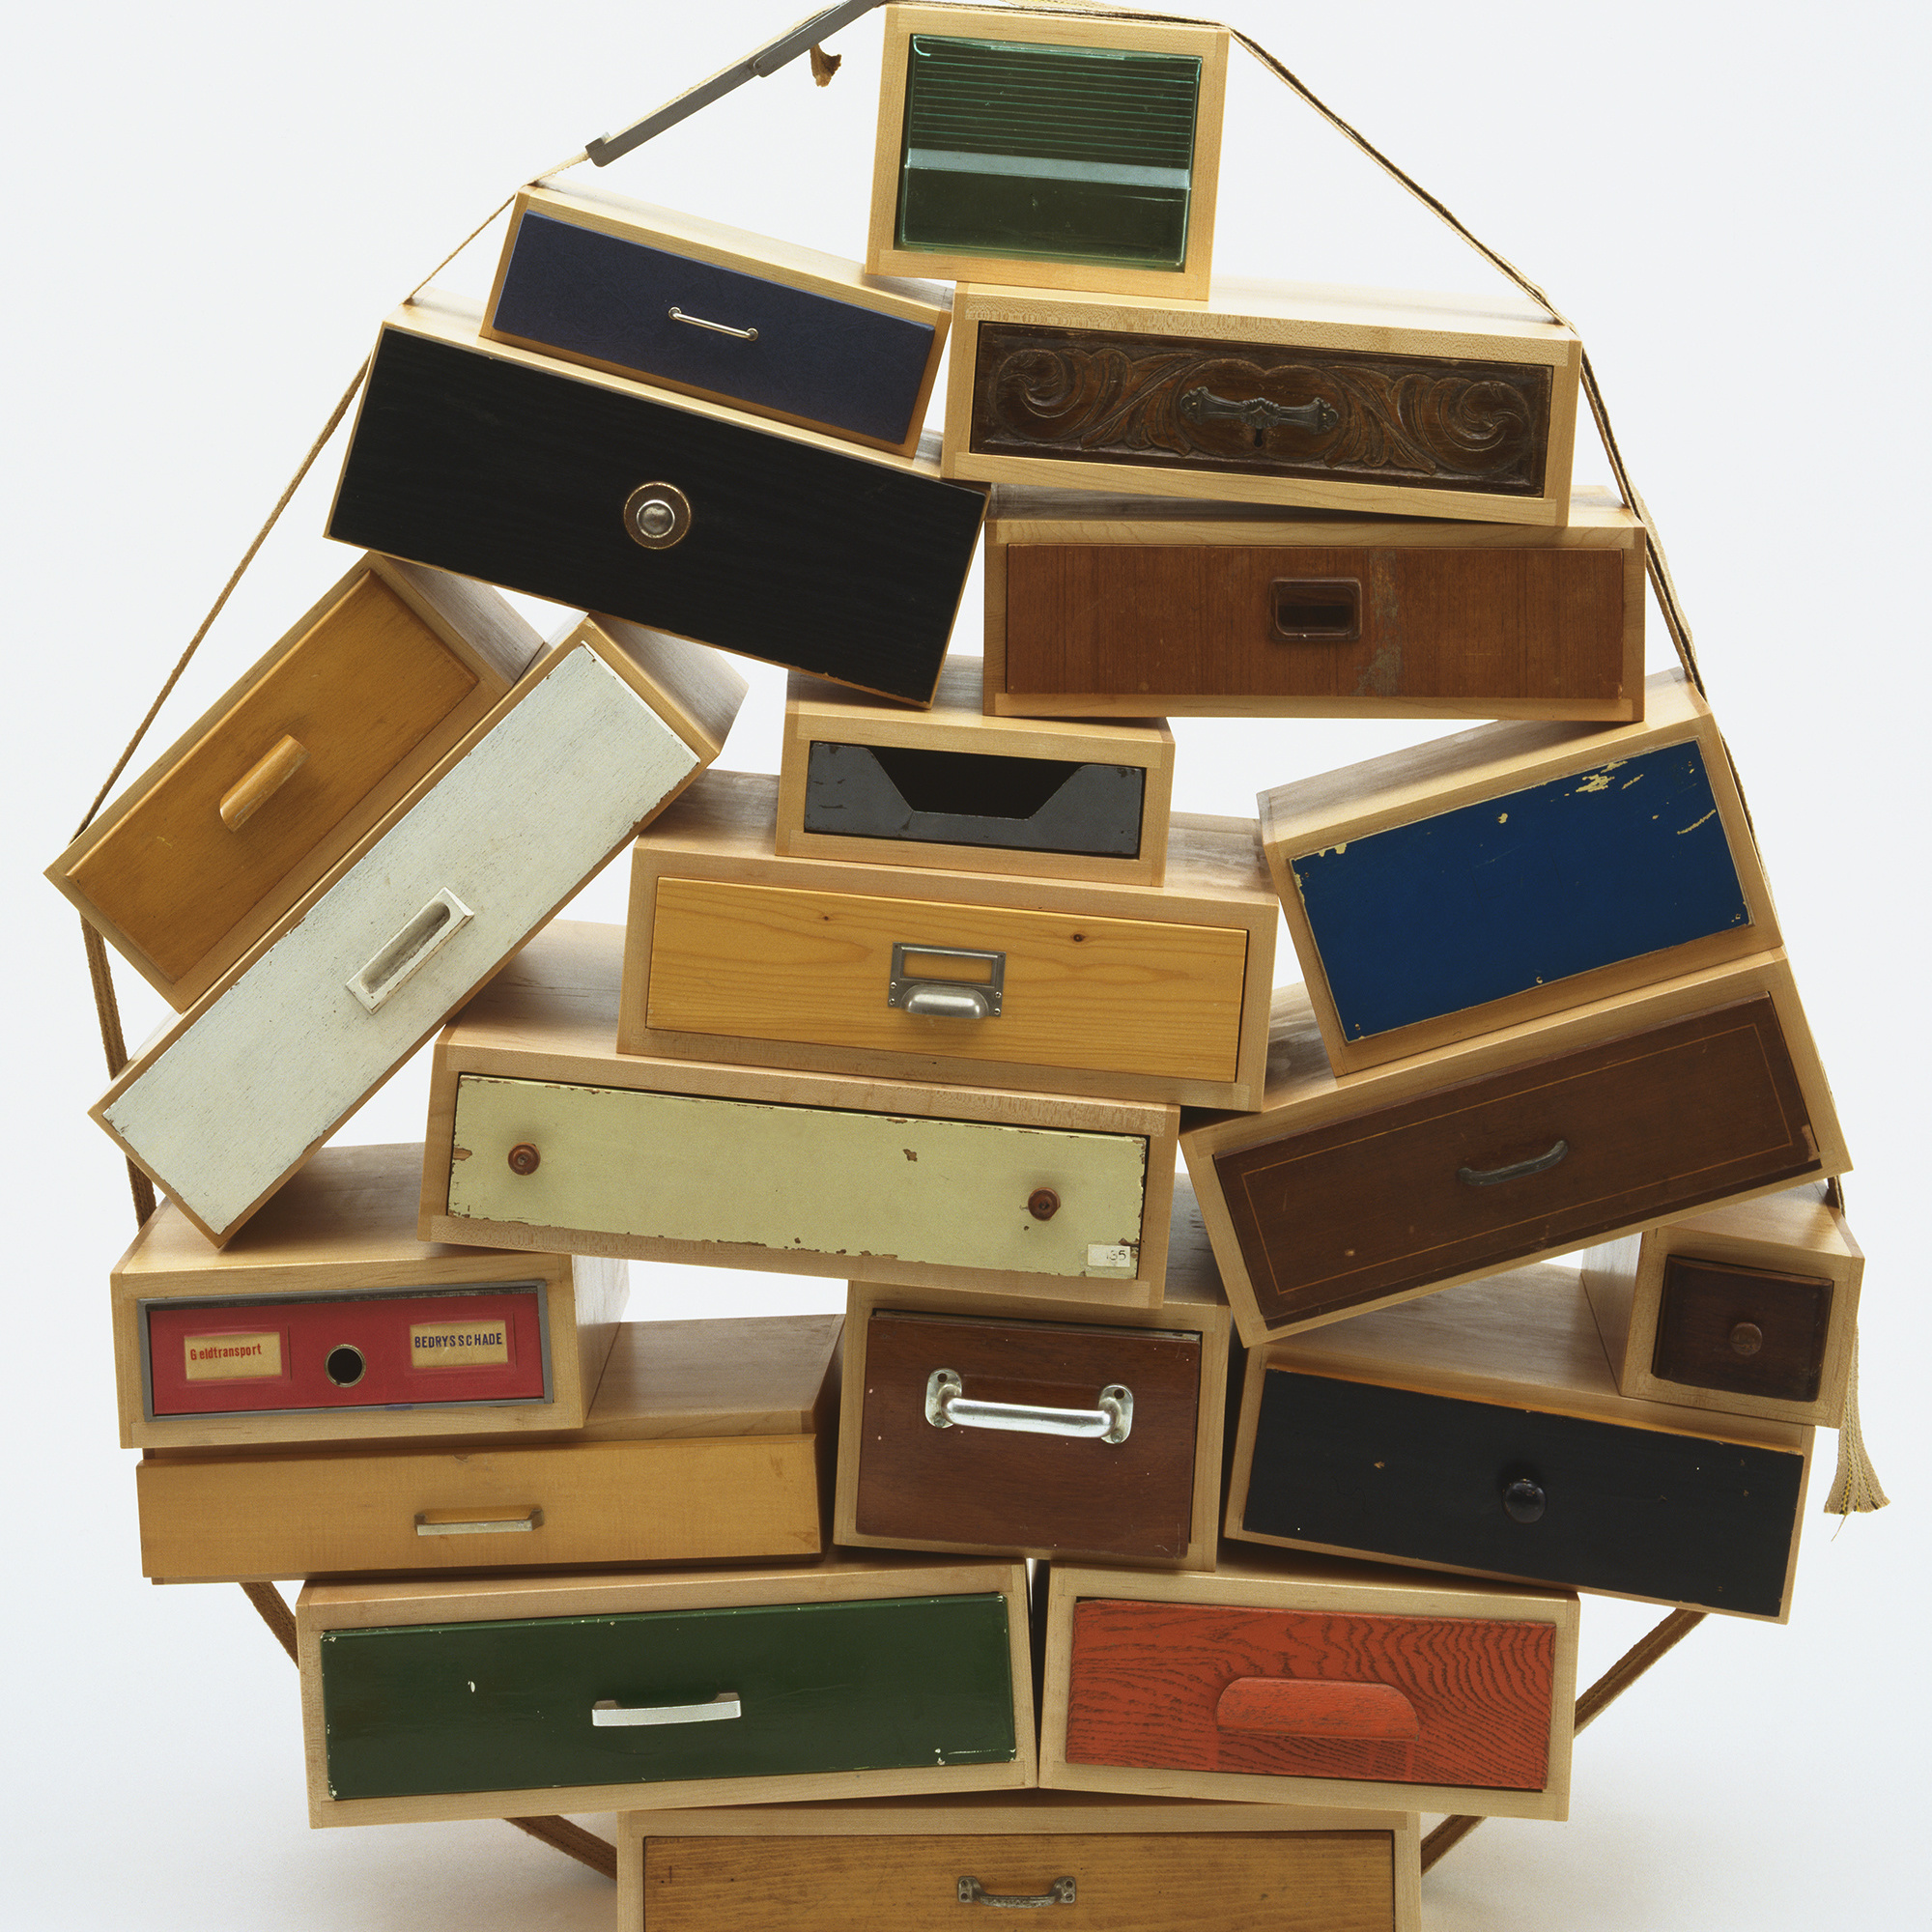 Tejo Remy. You Can't Lay Down Your Memory Chest of Drawers. 1991. Metal, paper, plastic, burlap, contact paper and paint, 55.5 × 53 × 20″ (141 × 134.6 × 50.8 cm). Manufactured by Tejo Remy for Droog Design, the Netherlands. Frederieke Taylor Purchase Fund